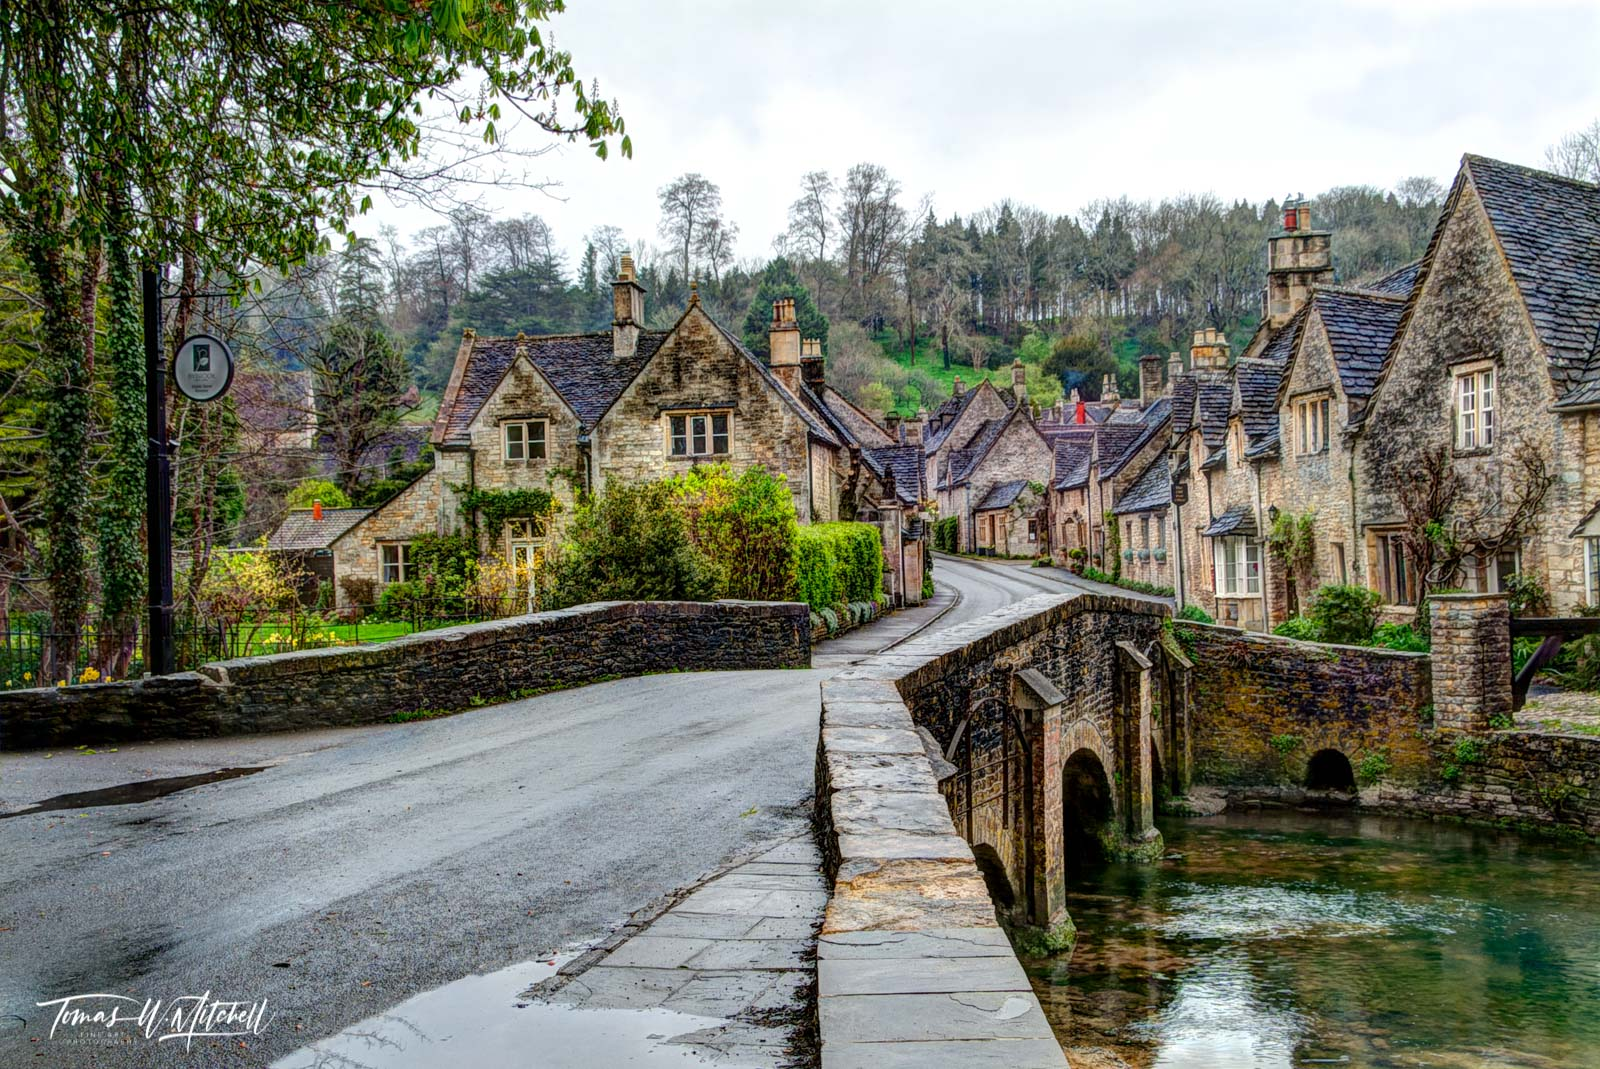 limited edition, Museum Grade, Fine Art, Prints, England, Castle combe, Cotswolds, village, bridge, old town, wiltshire, star dust, England, bridge, prints, photograph, photo